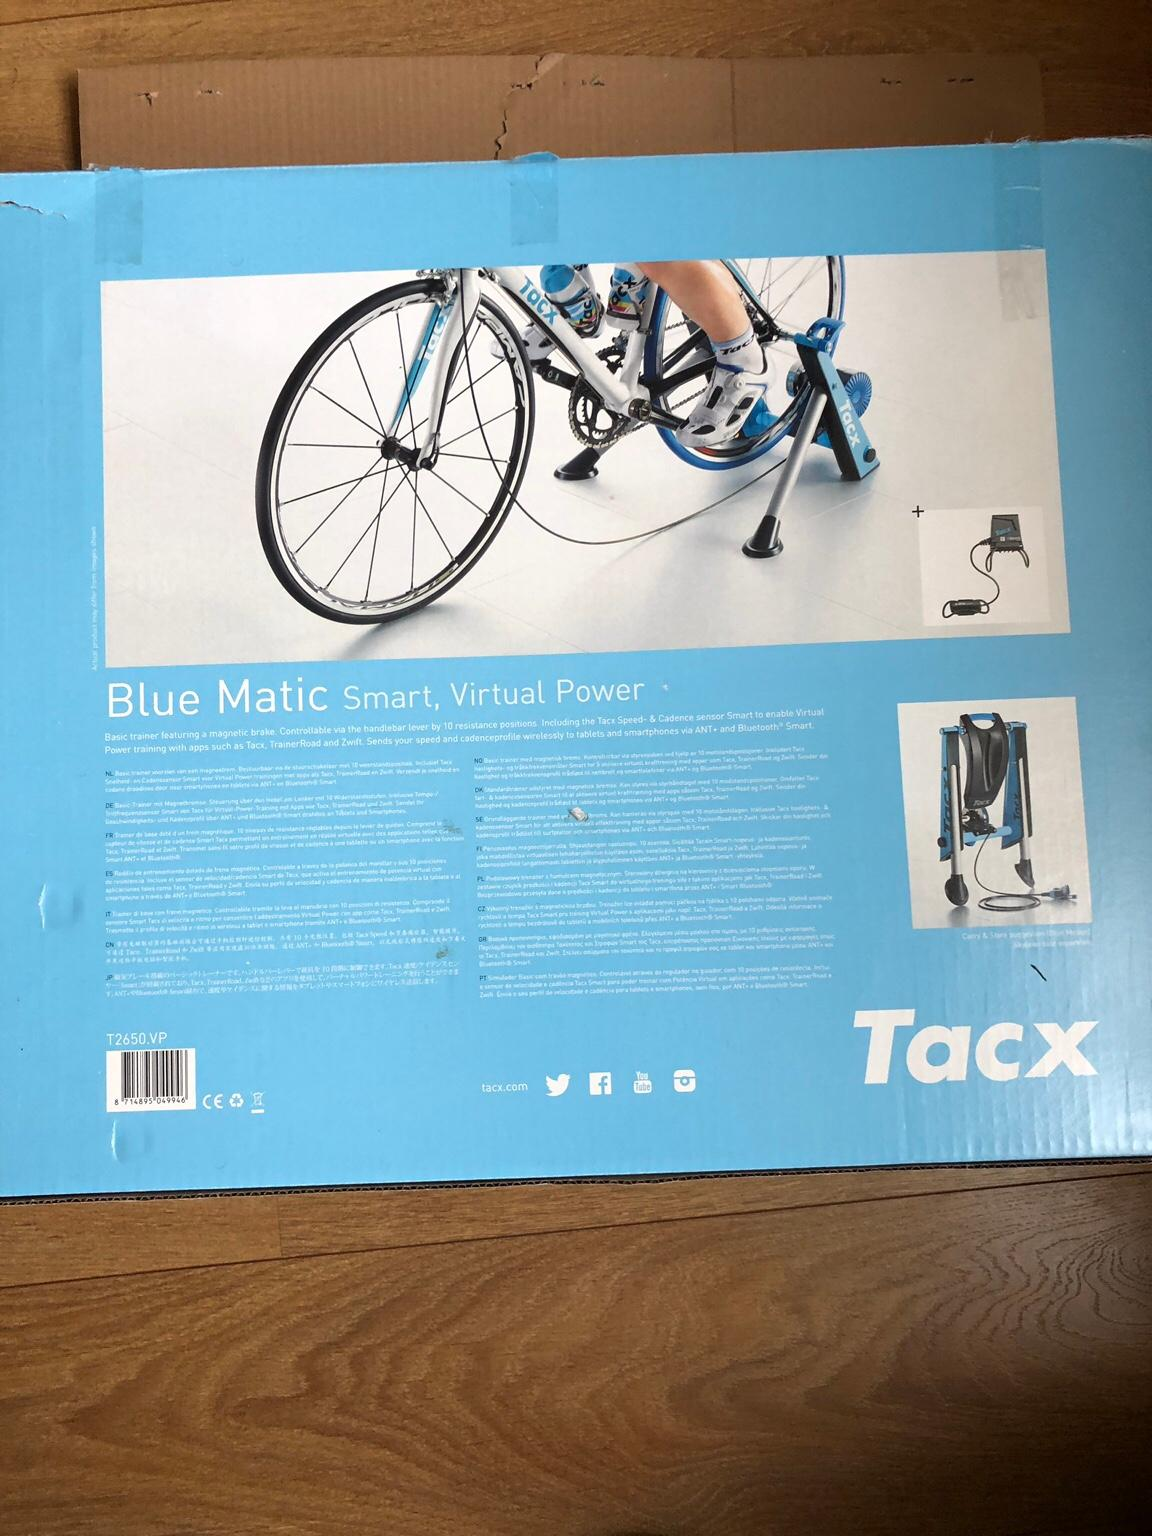 Tacx Blue Matic Smart Ant Virtual Trainer